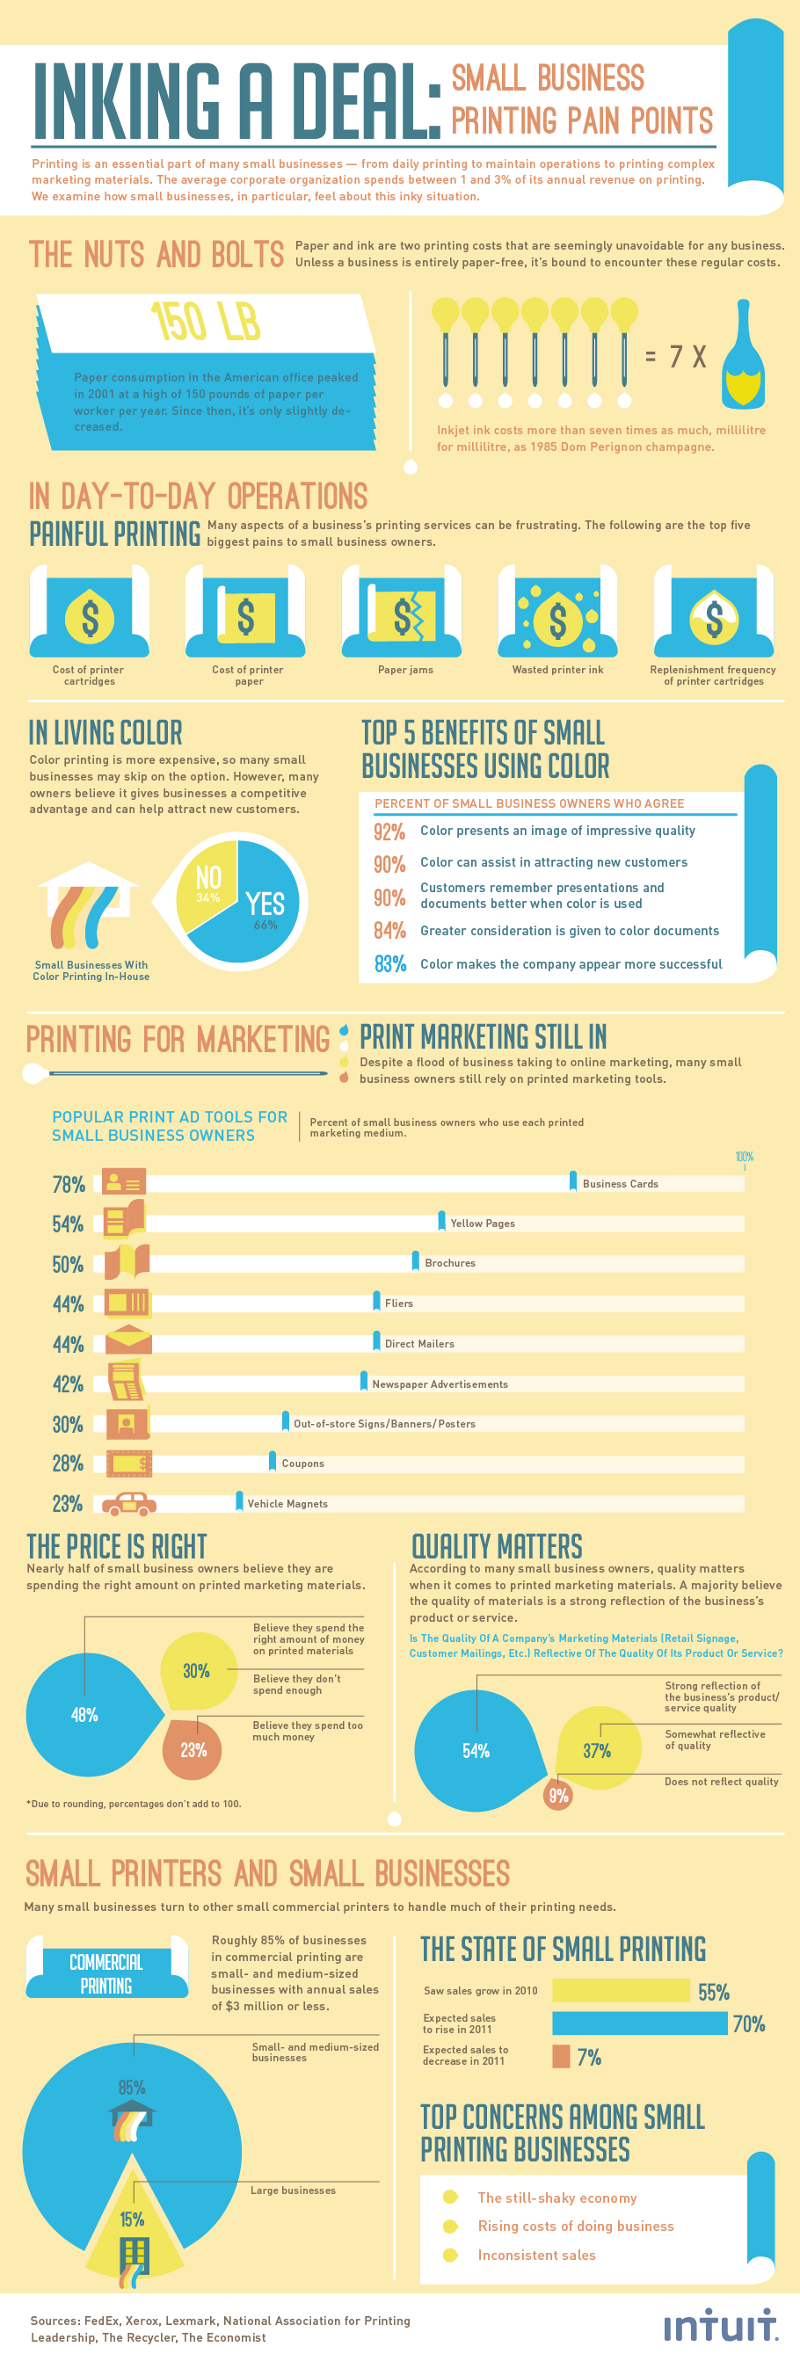 Small Business Printing